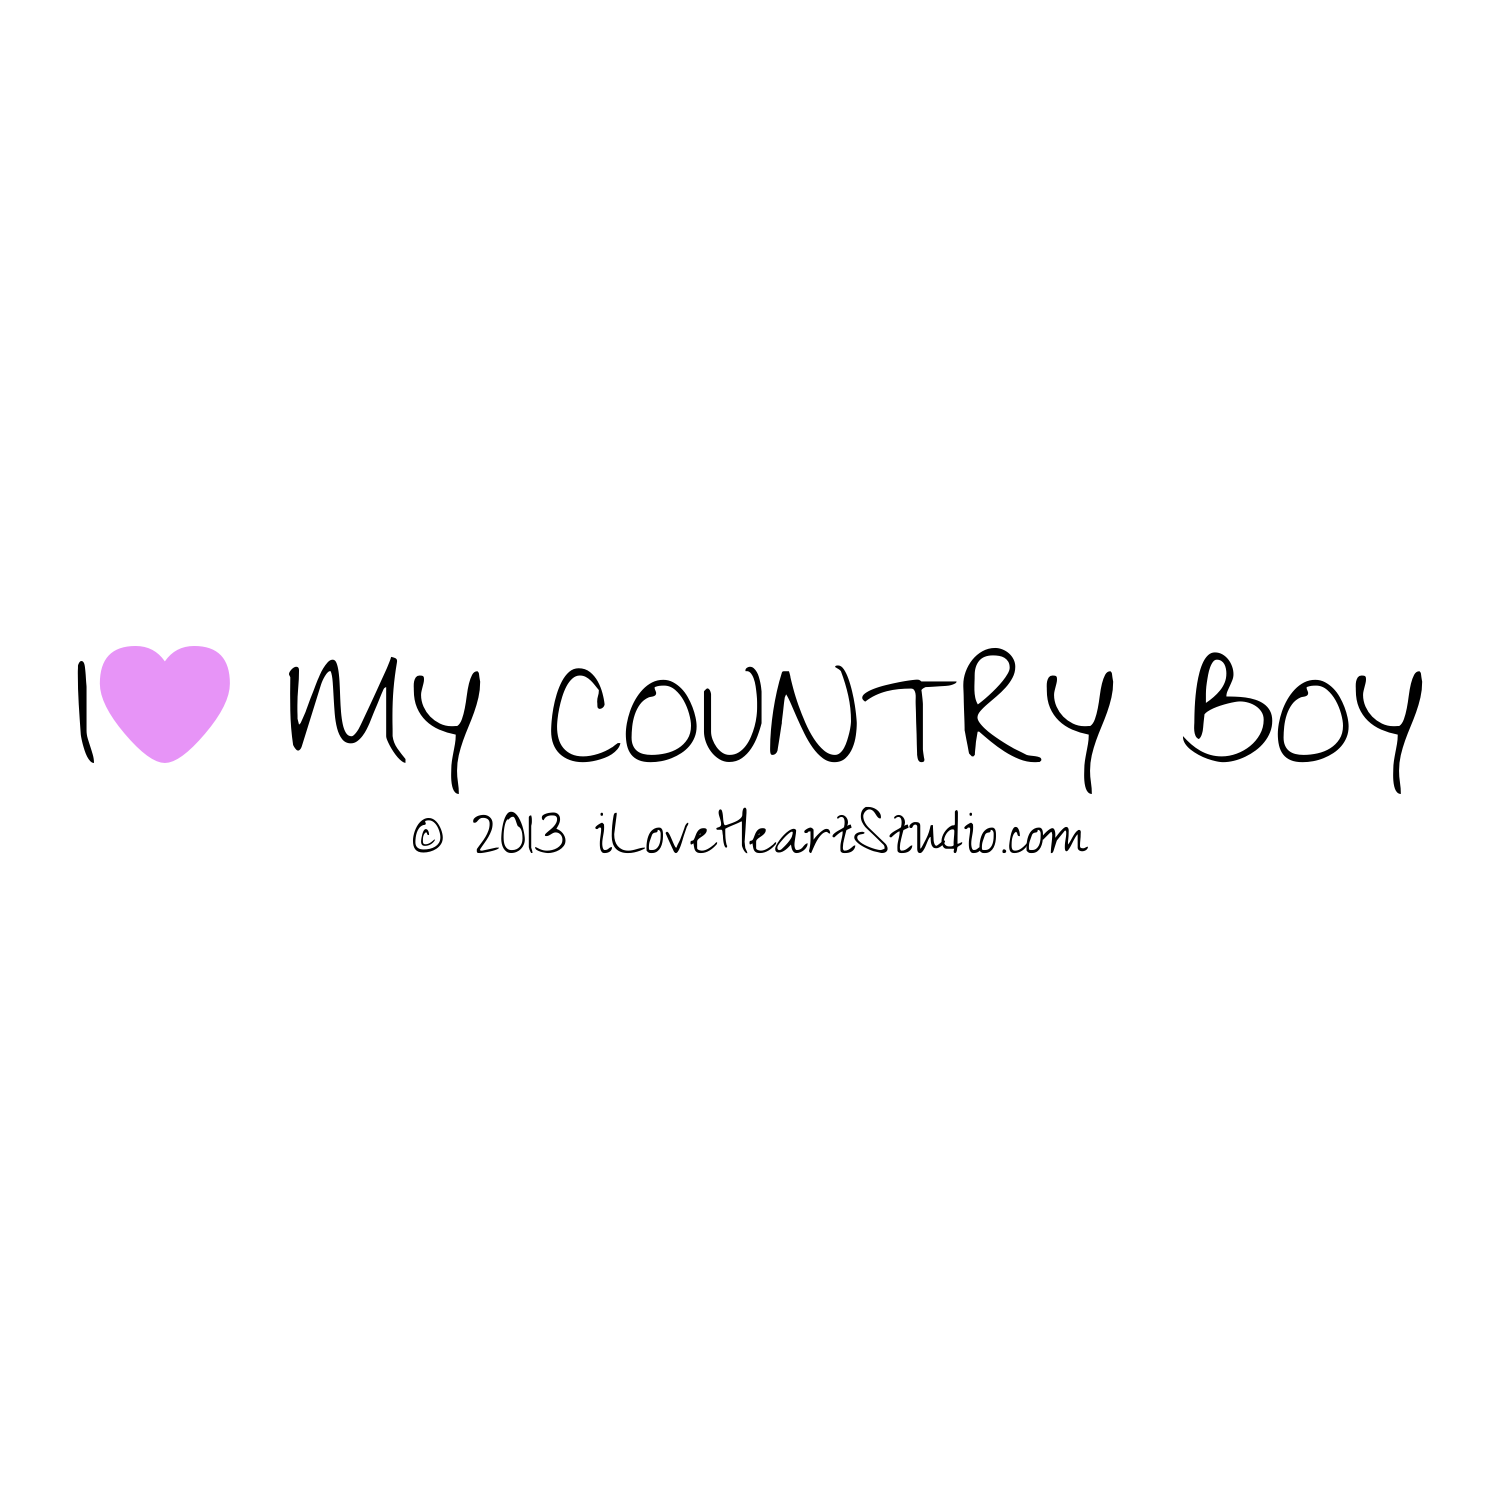 I Love Heart My Country Boy Design On T Shirt Poster Mug And